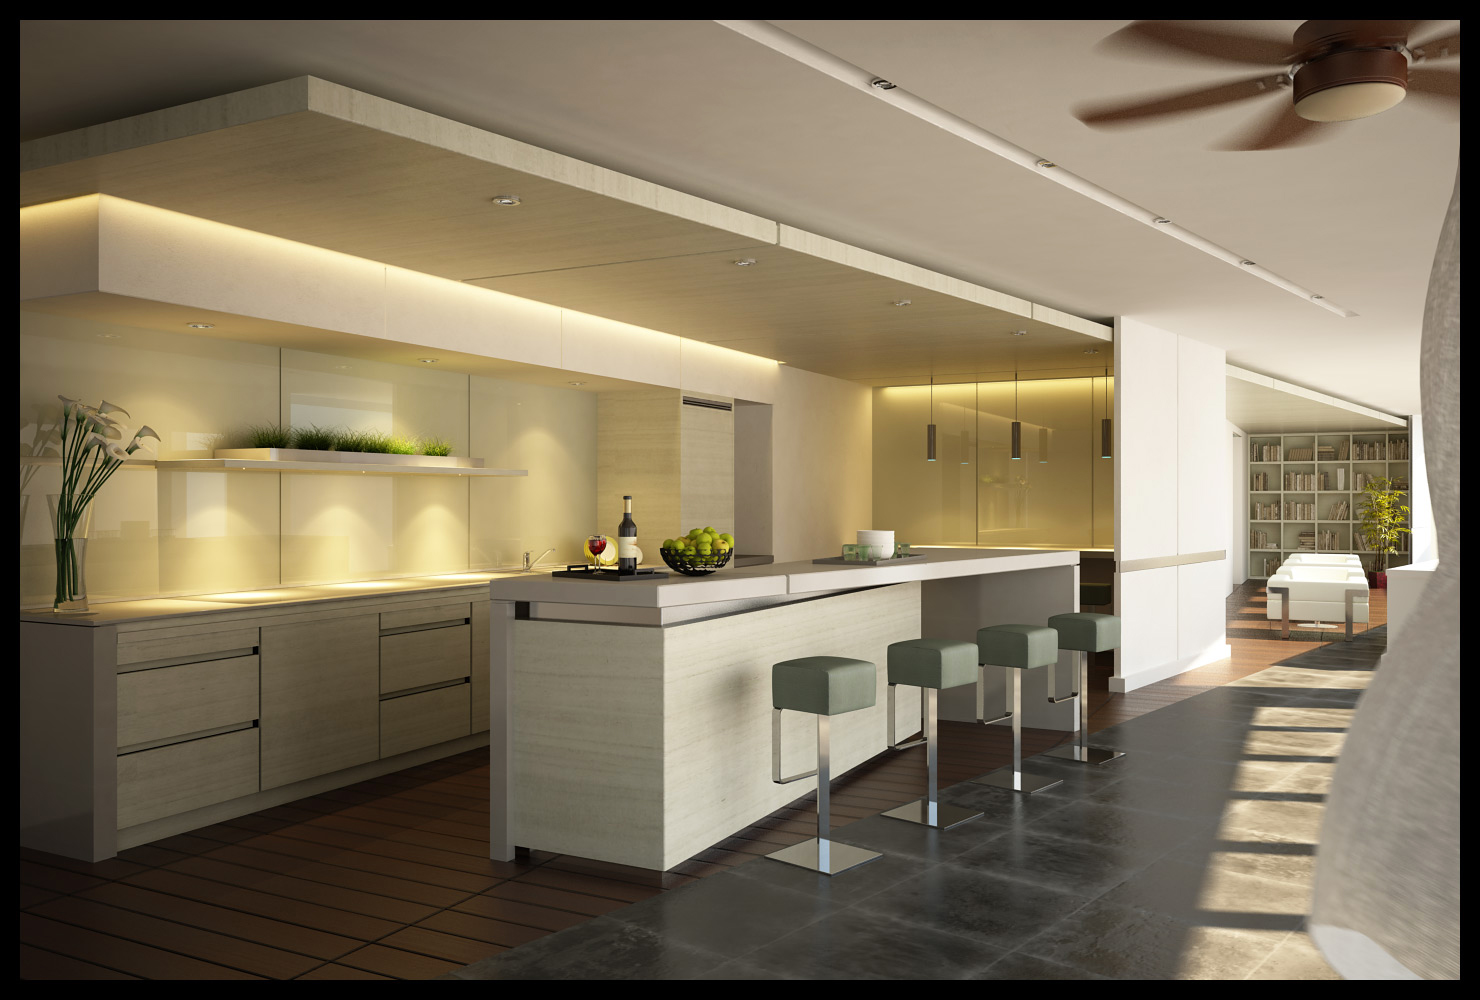 Modern Home Design Ideas for Simple Luxury Kitchen